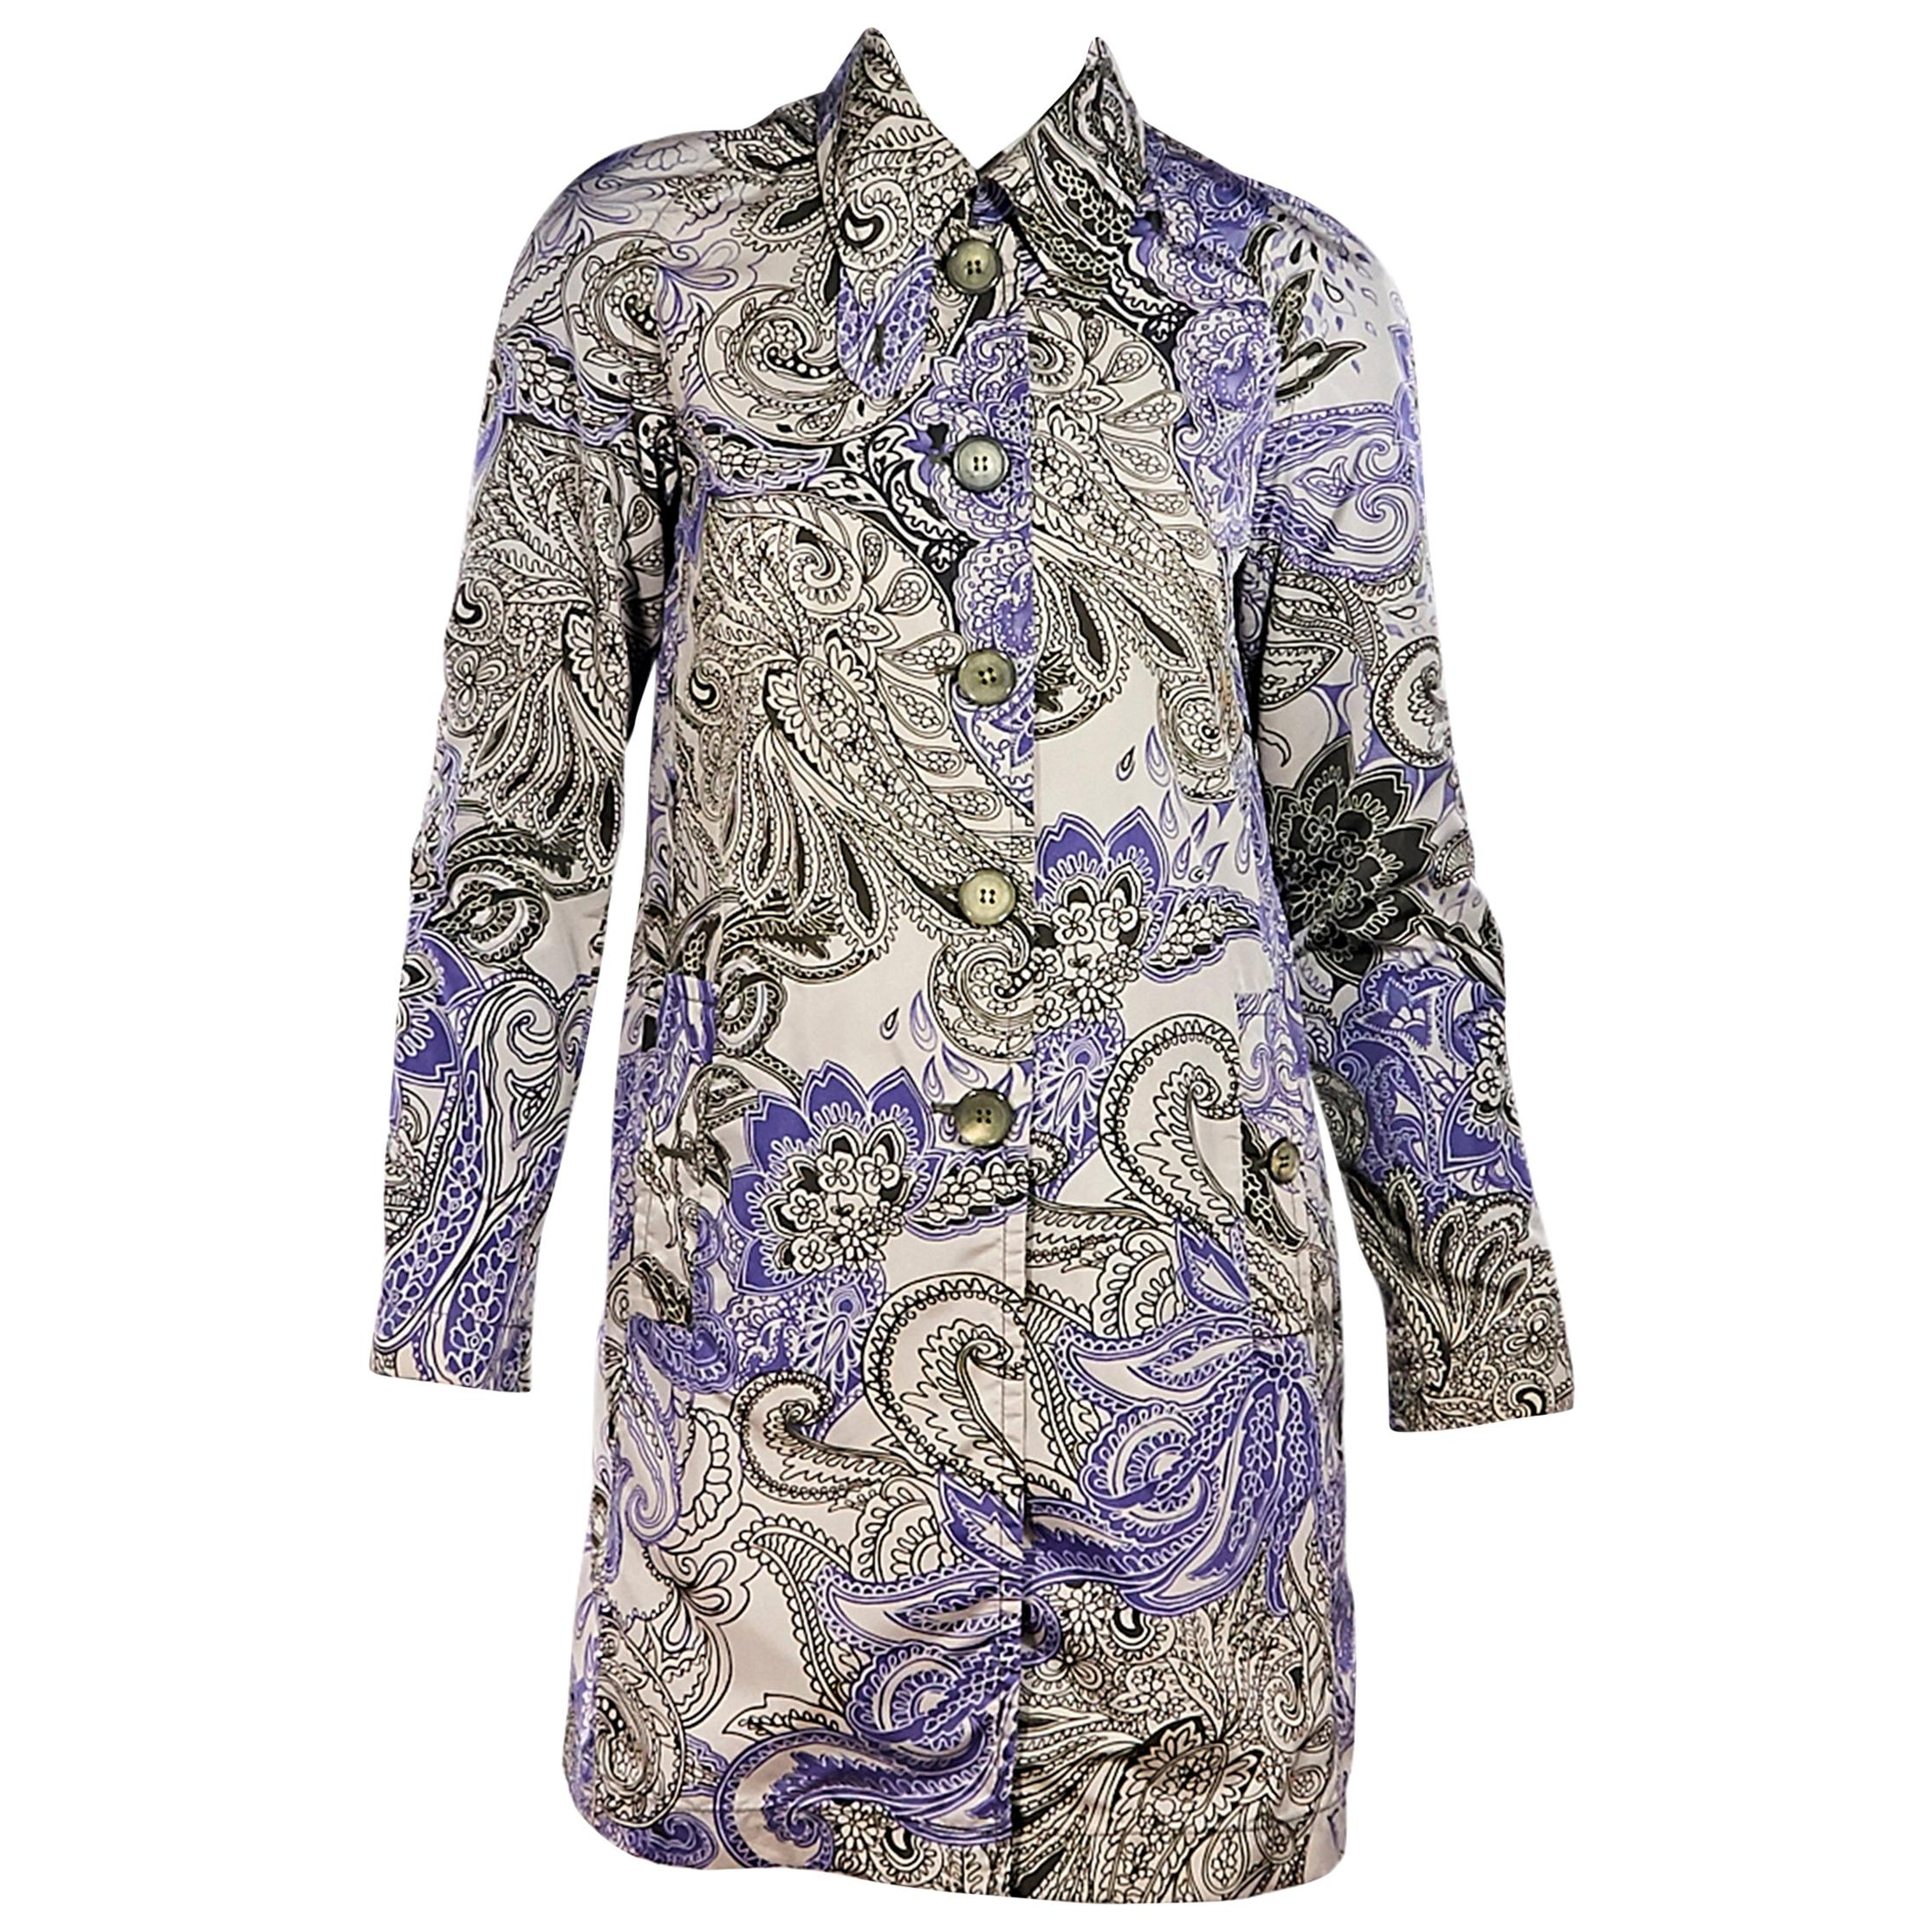 390fe25c4 Vintage Etro: Dresses, Jackets & More - 260 For Sale at 1stdibs